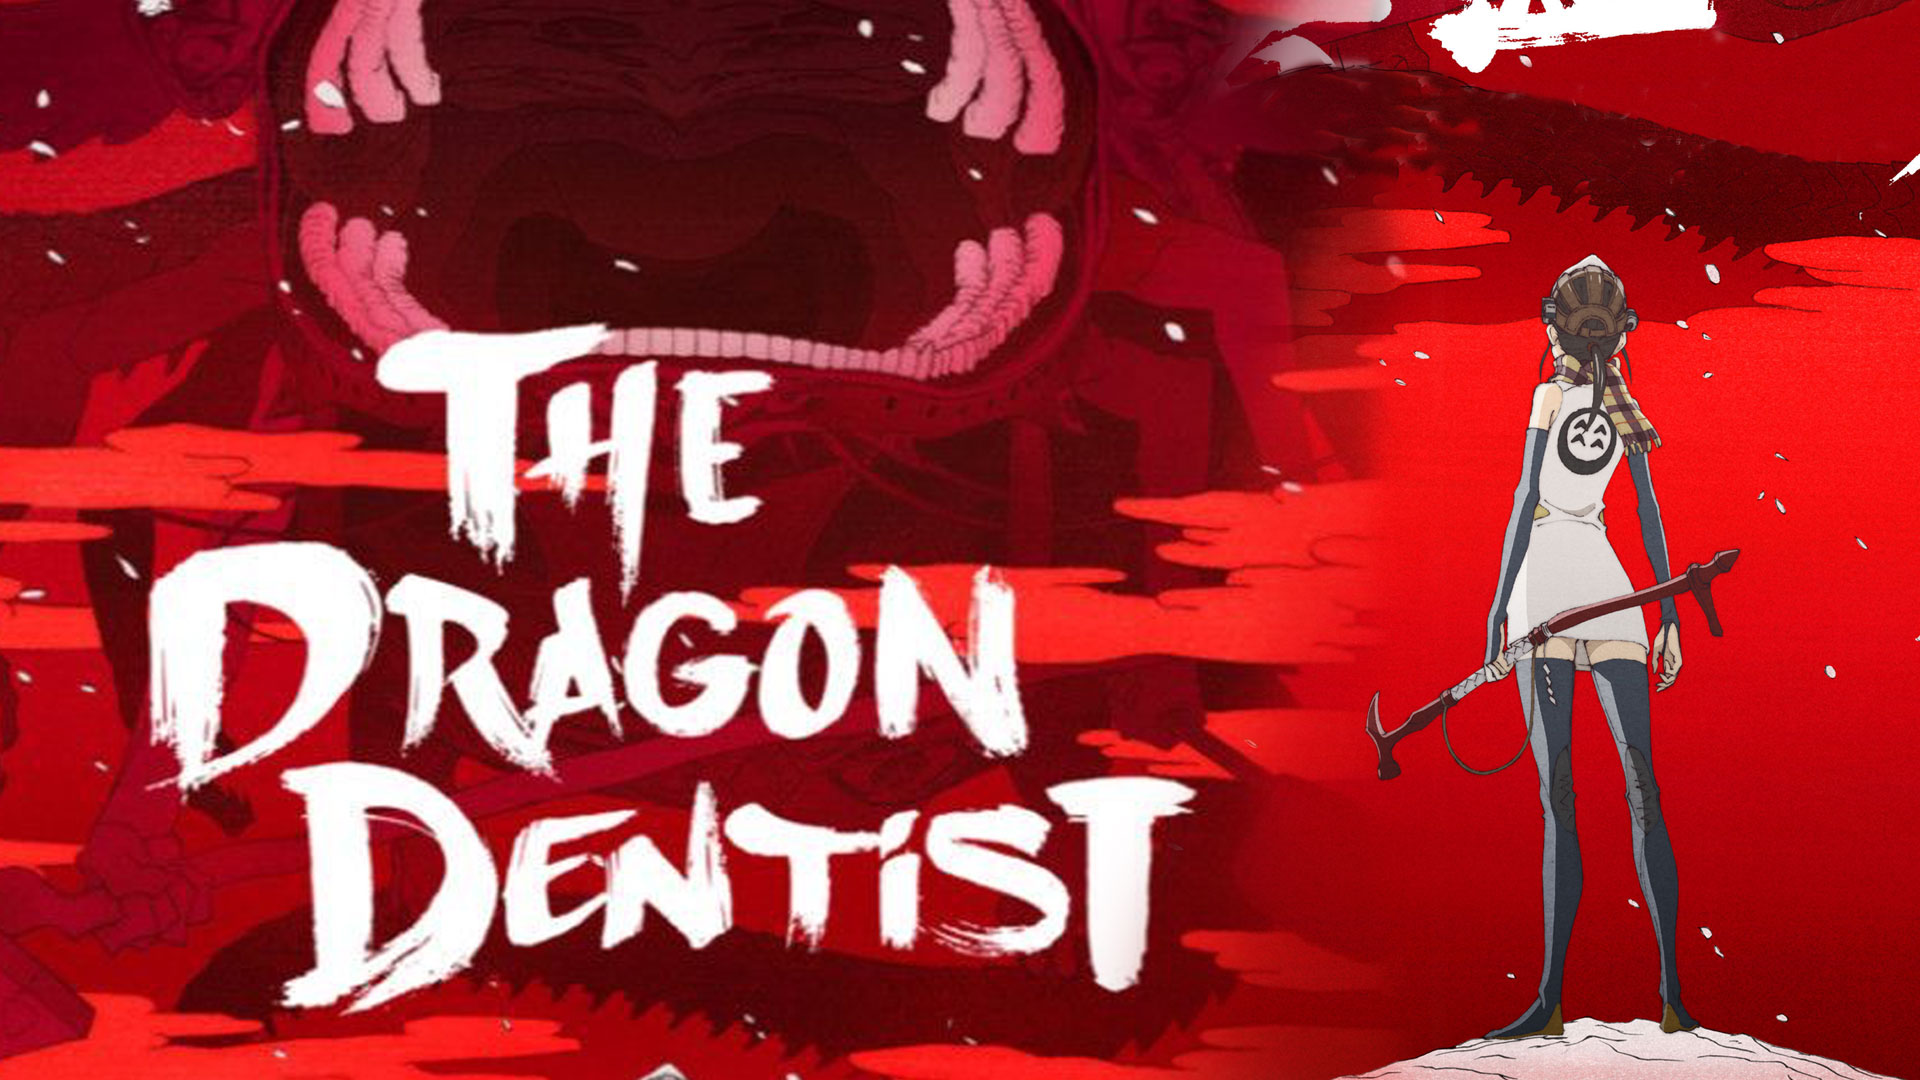 Copy of The Dragon Dentist